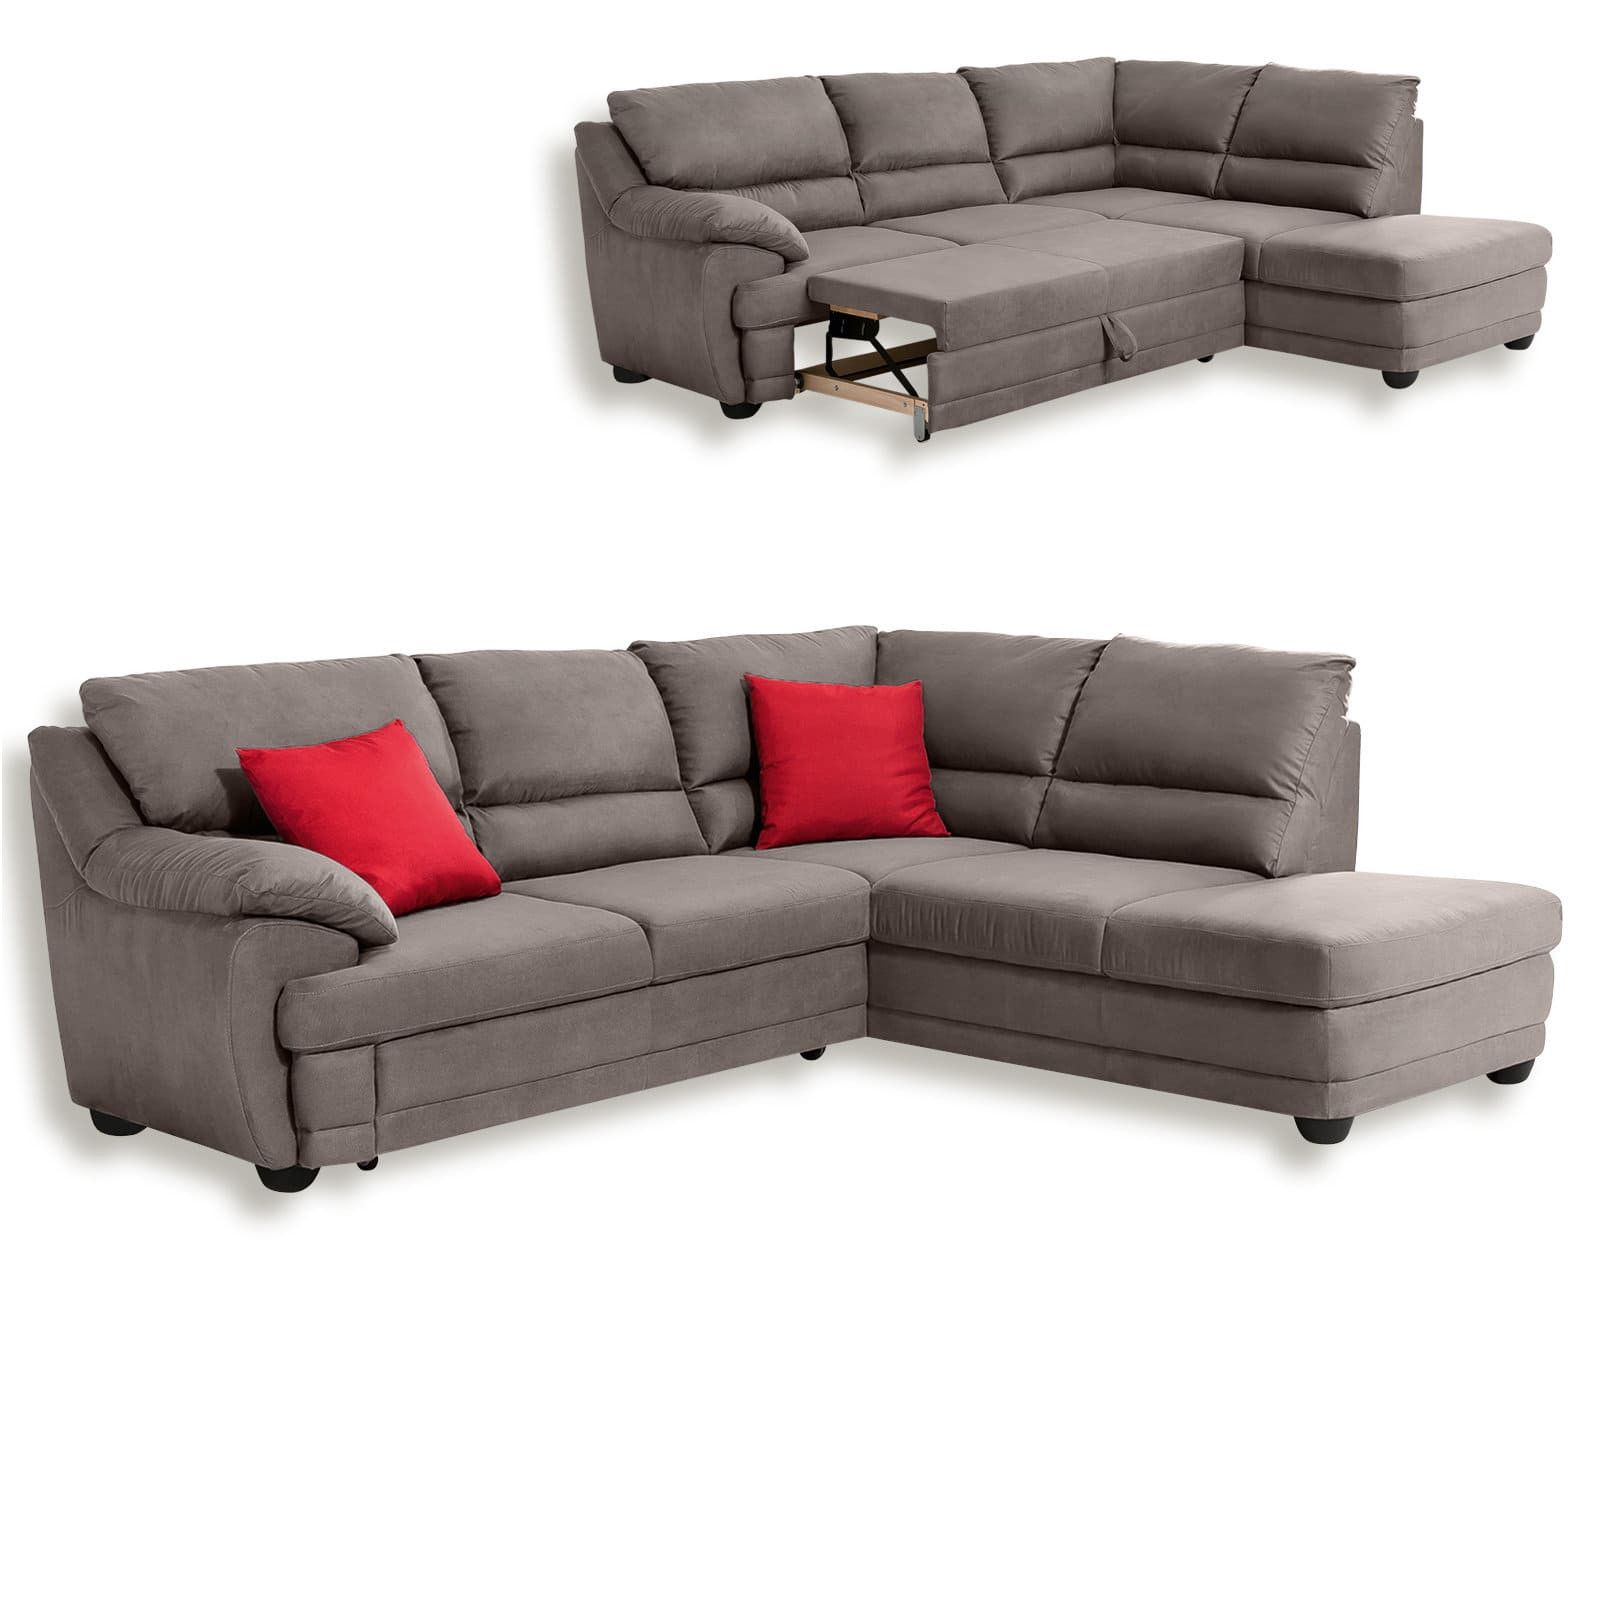 Akzeptabel Couch Relaxfunktion Couch Home Decor Sectional Couch